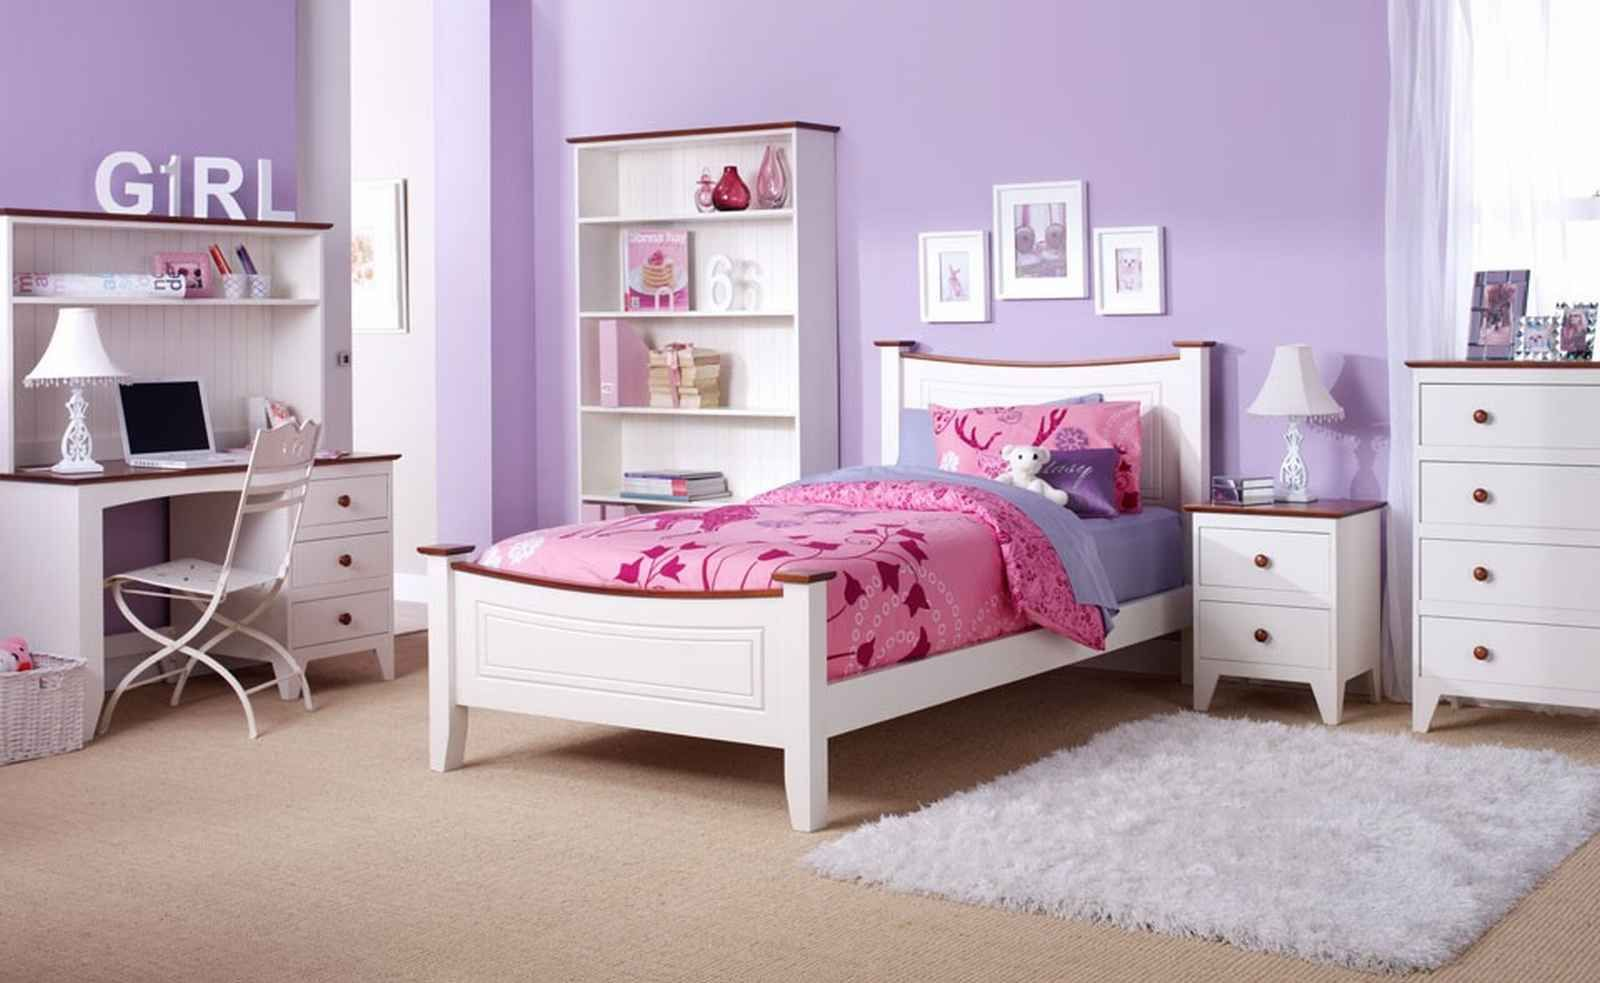 Furniture For Girls Bedroom 2 Pics On